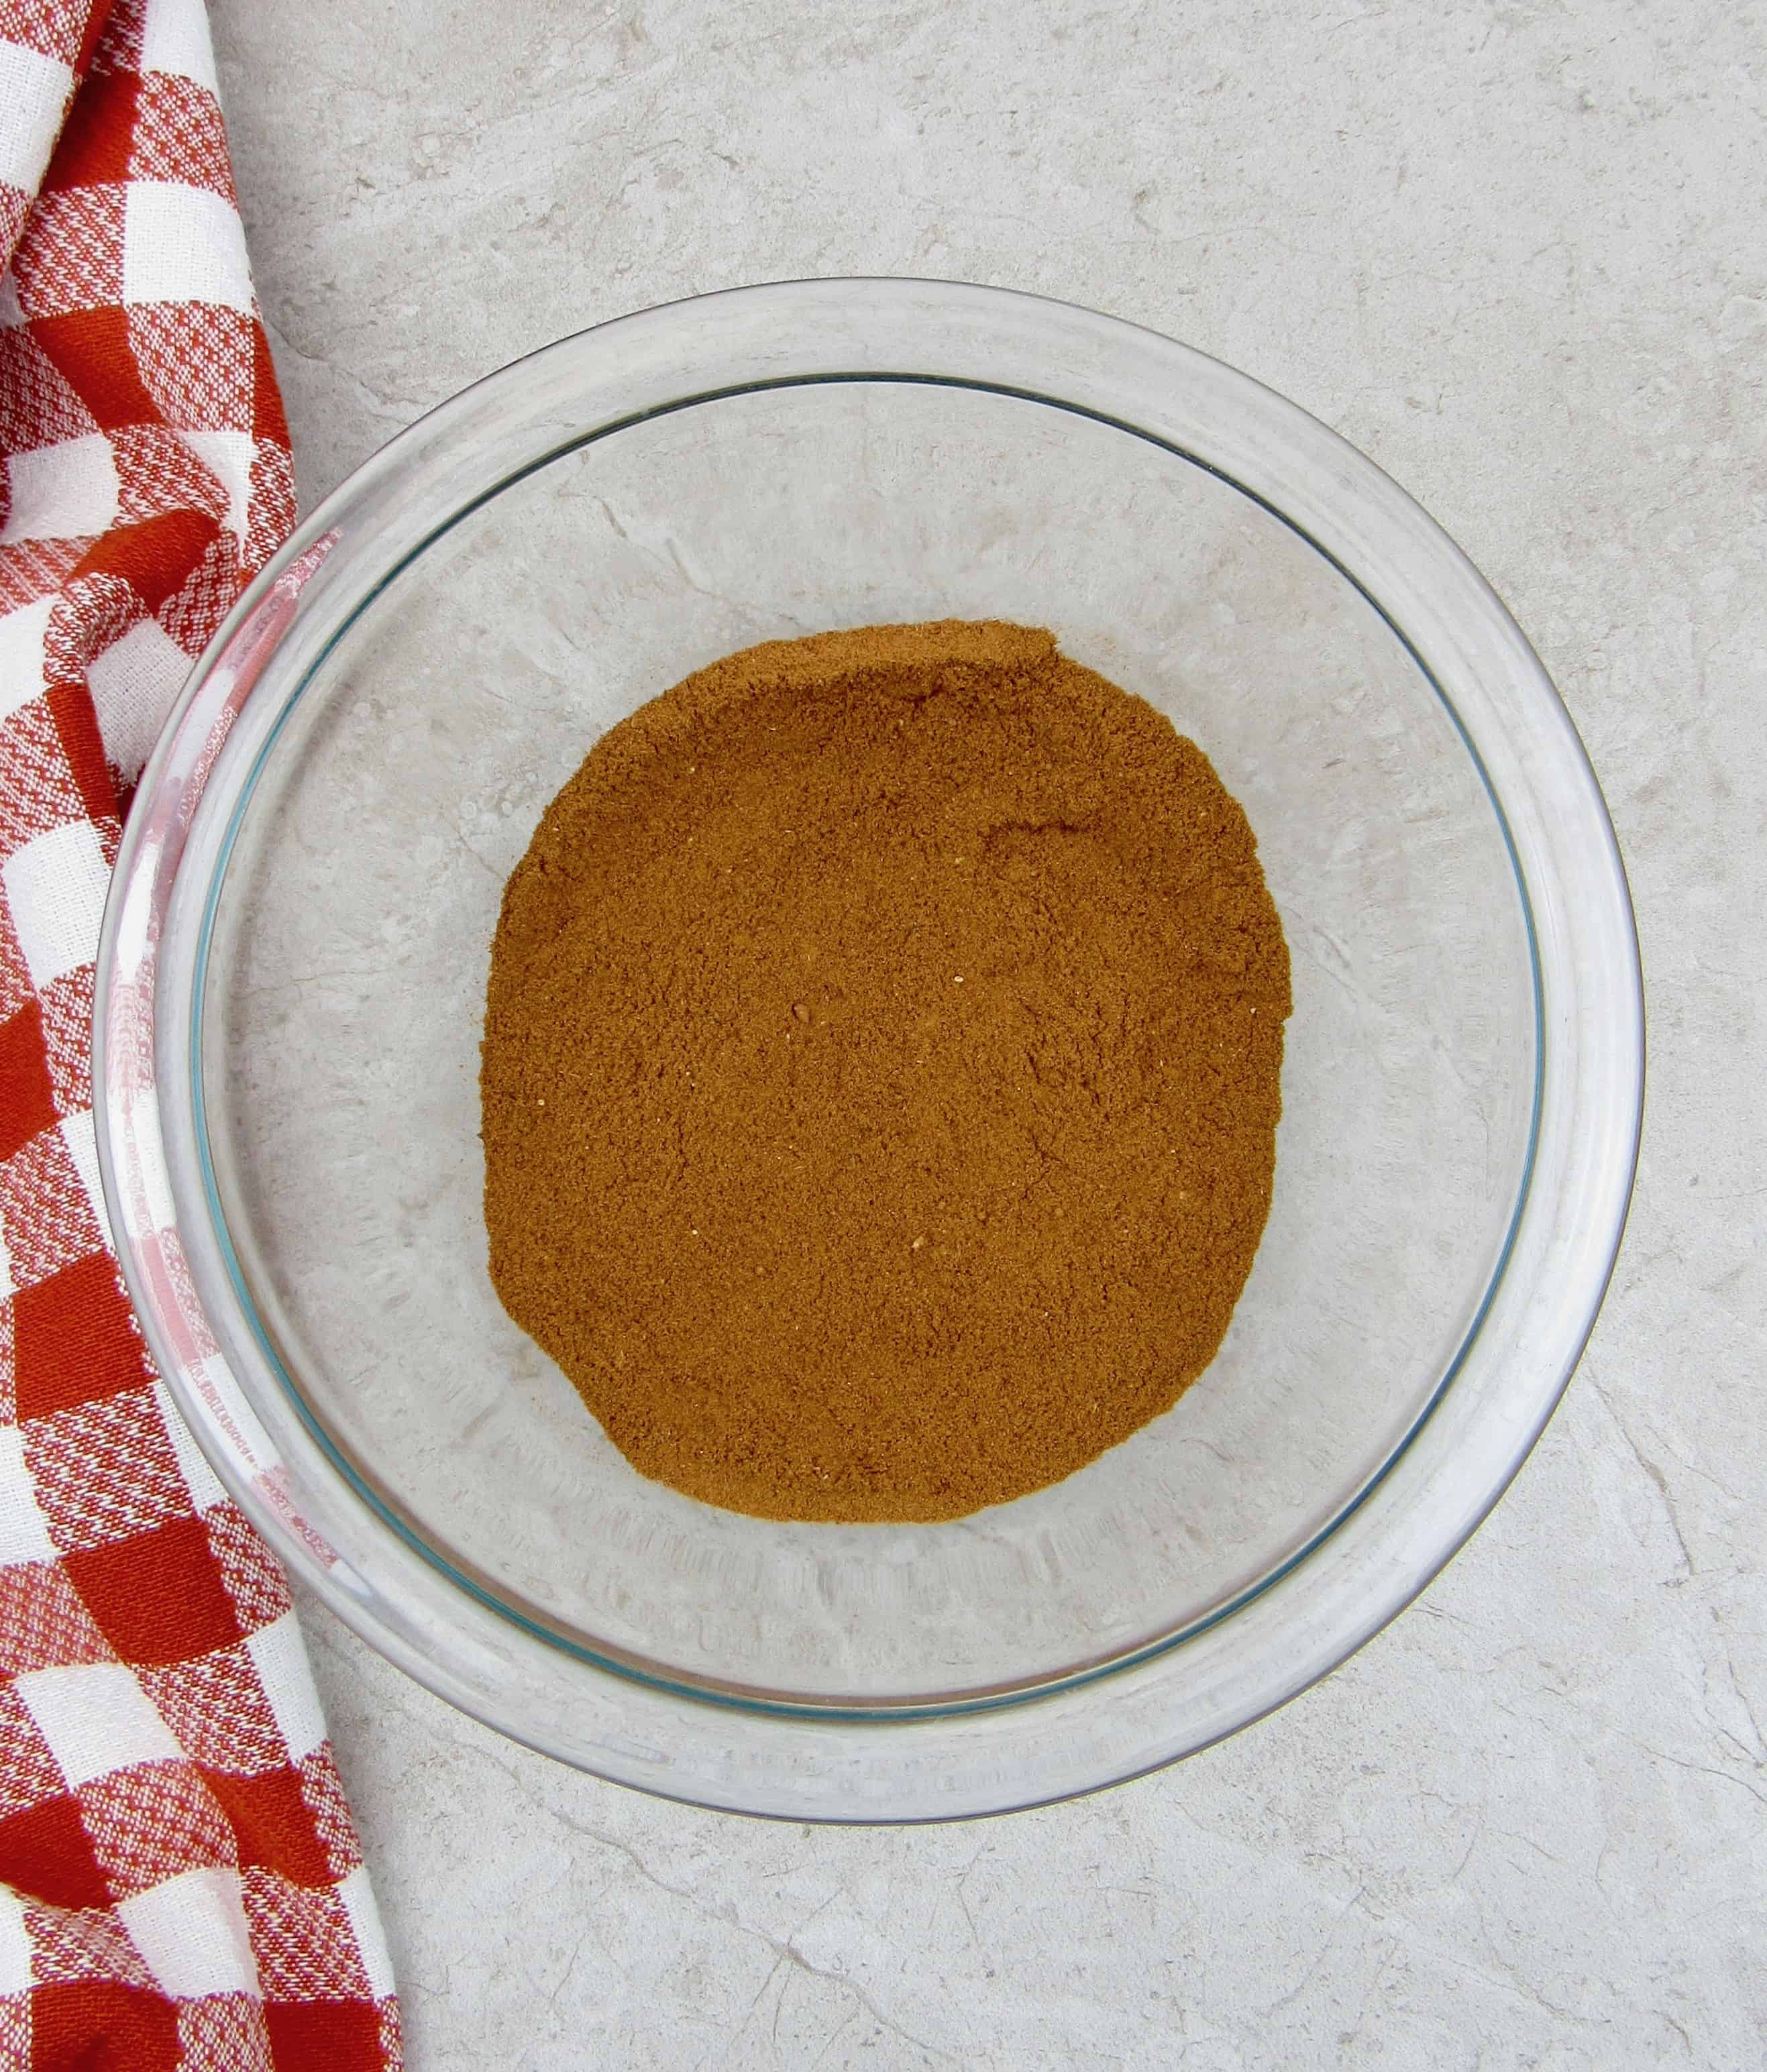 apple pie spice mixture in glass bowl mixed